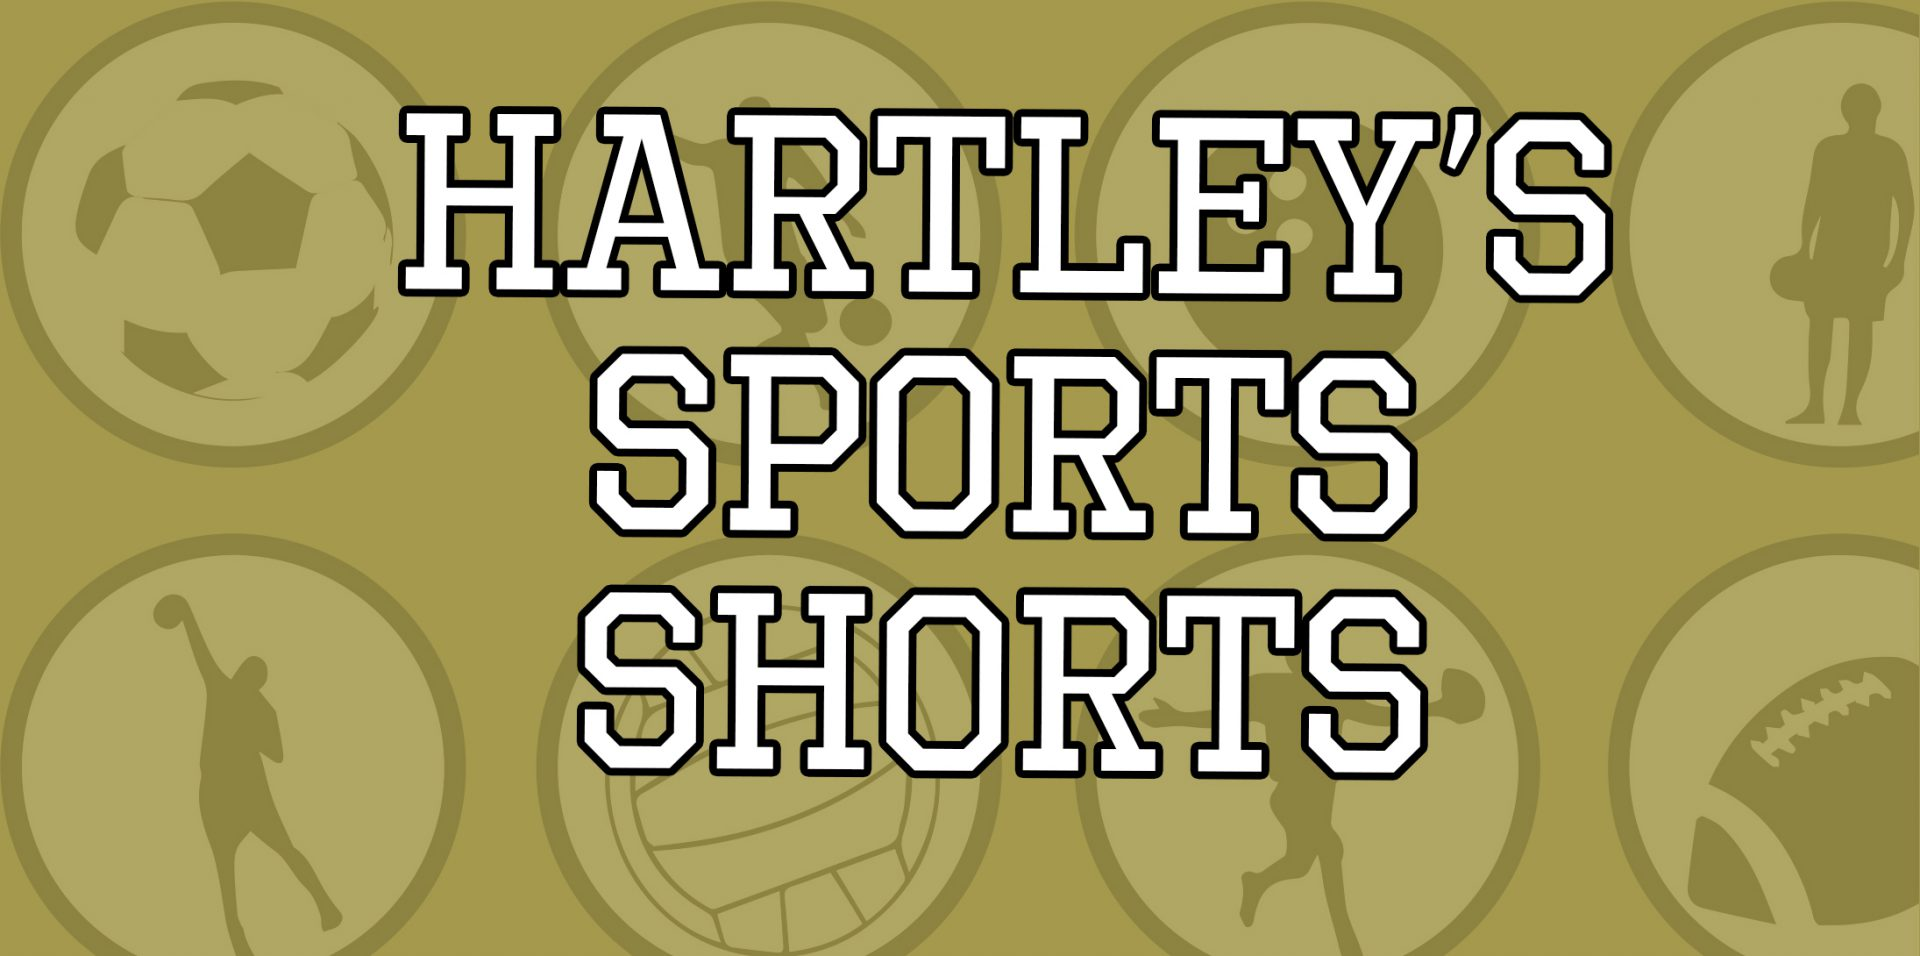 HARTLEY'S SPORTS SHORTS: THURSDAY, AUGUST 13